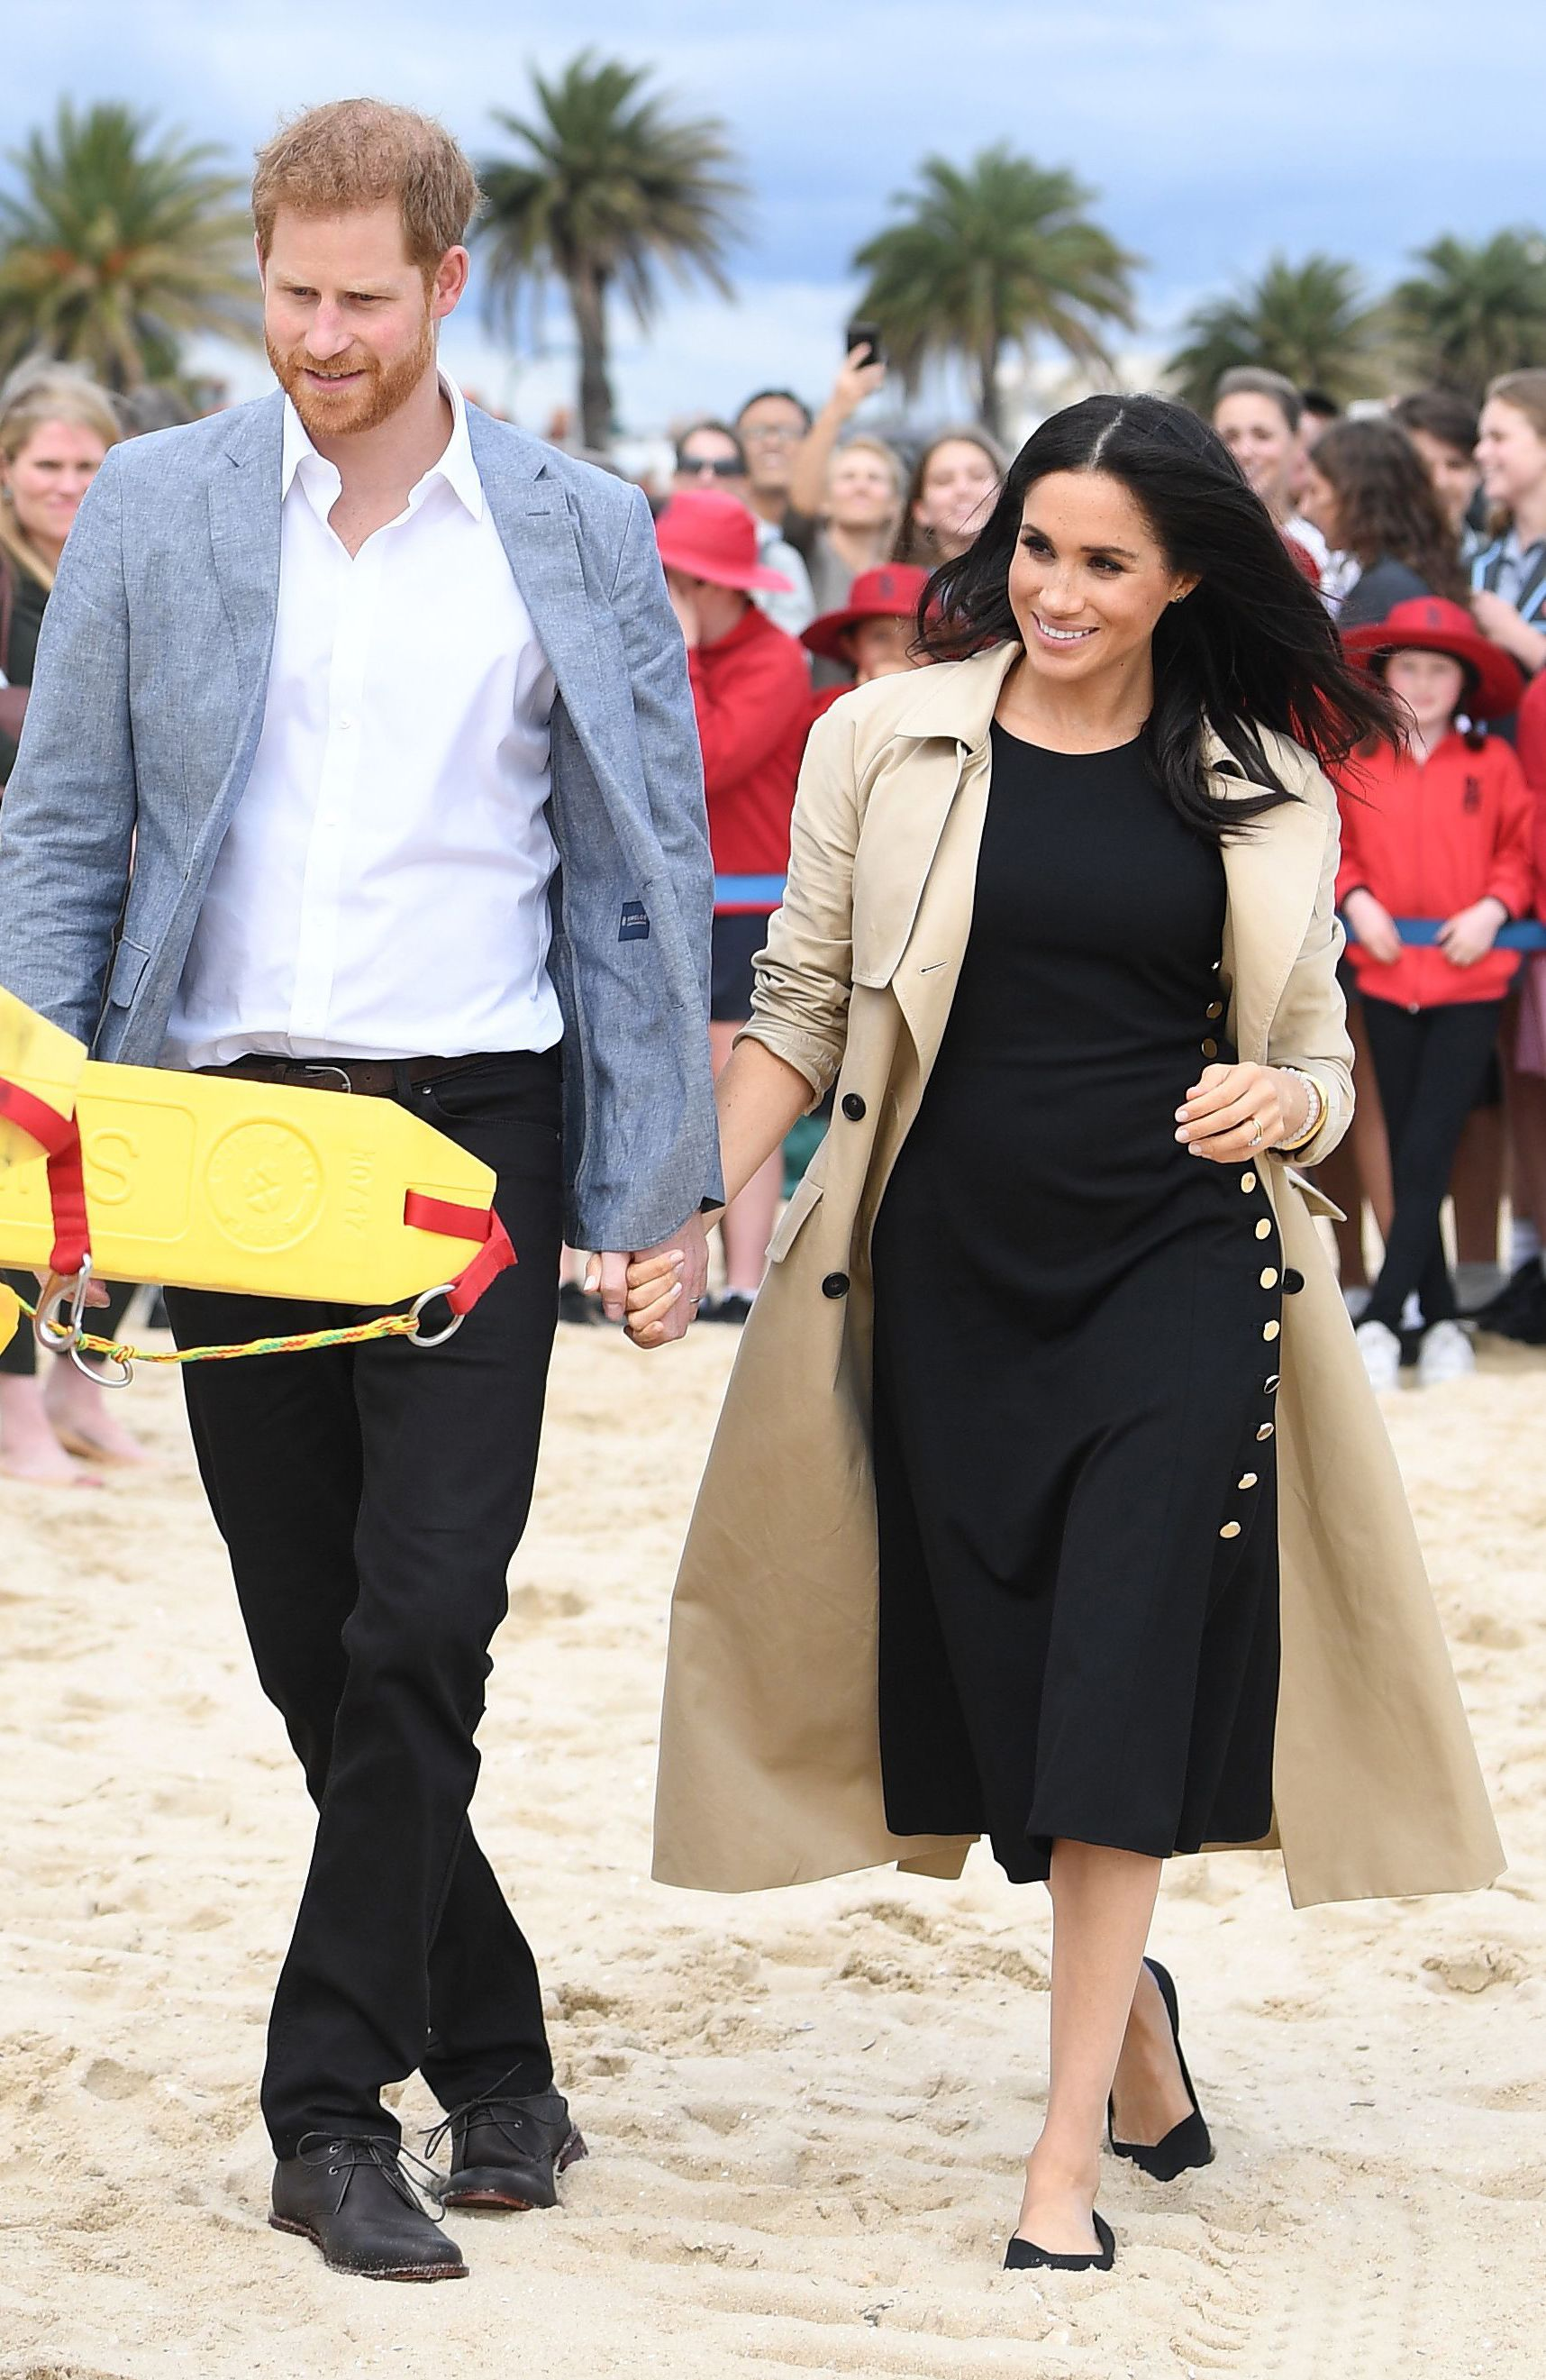 Meghan Markle Rocked Yet Another Pair Of Comfy Sneaks On The Royal Tour recommend